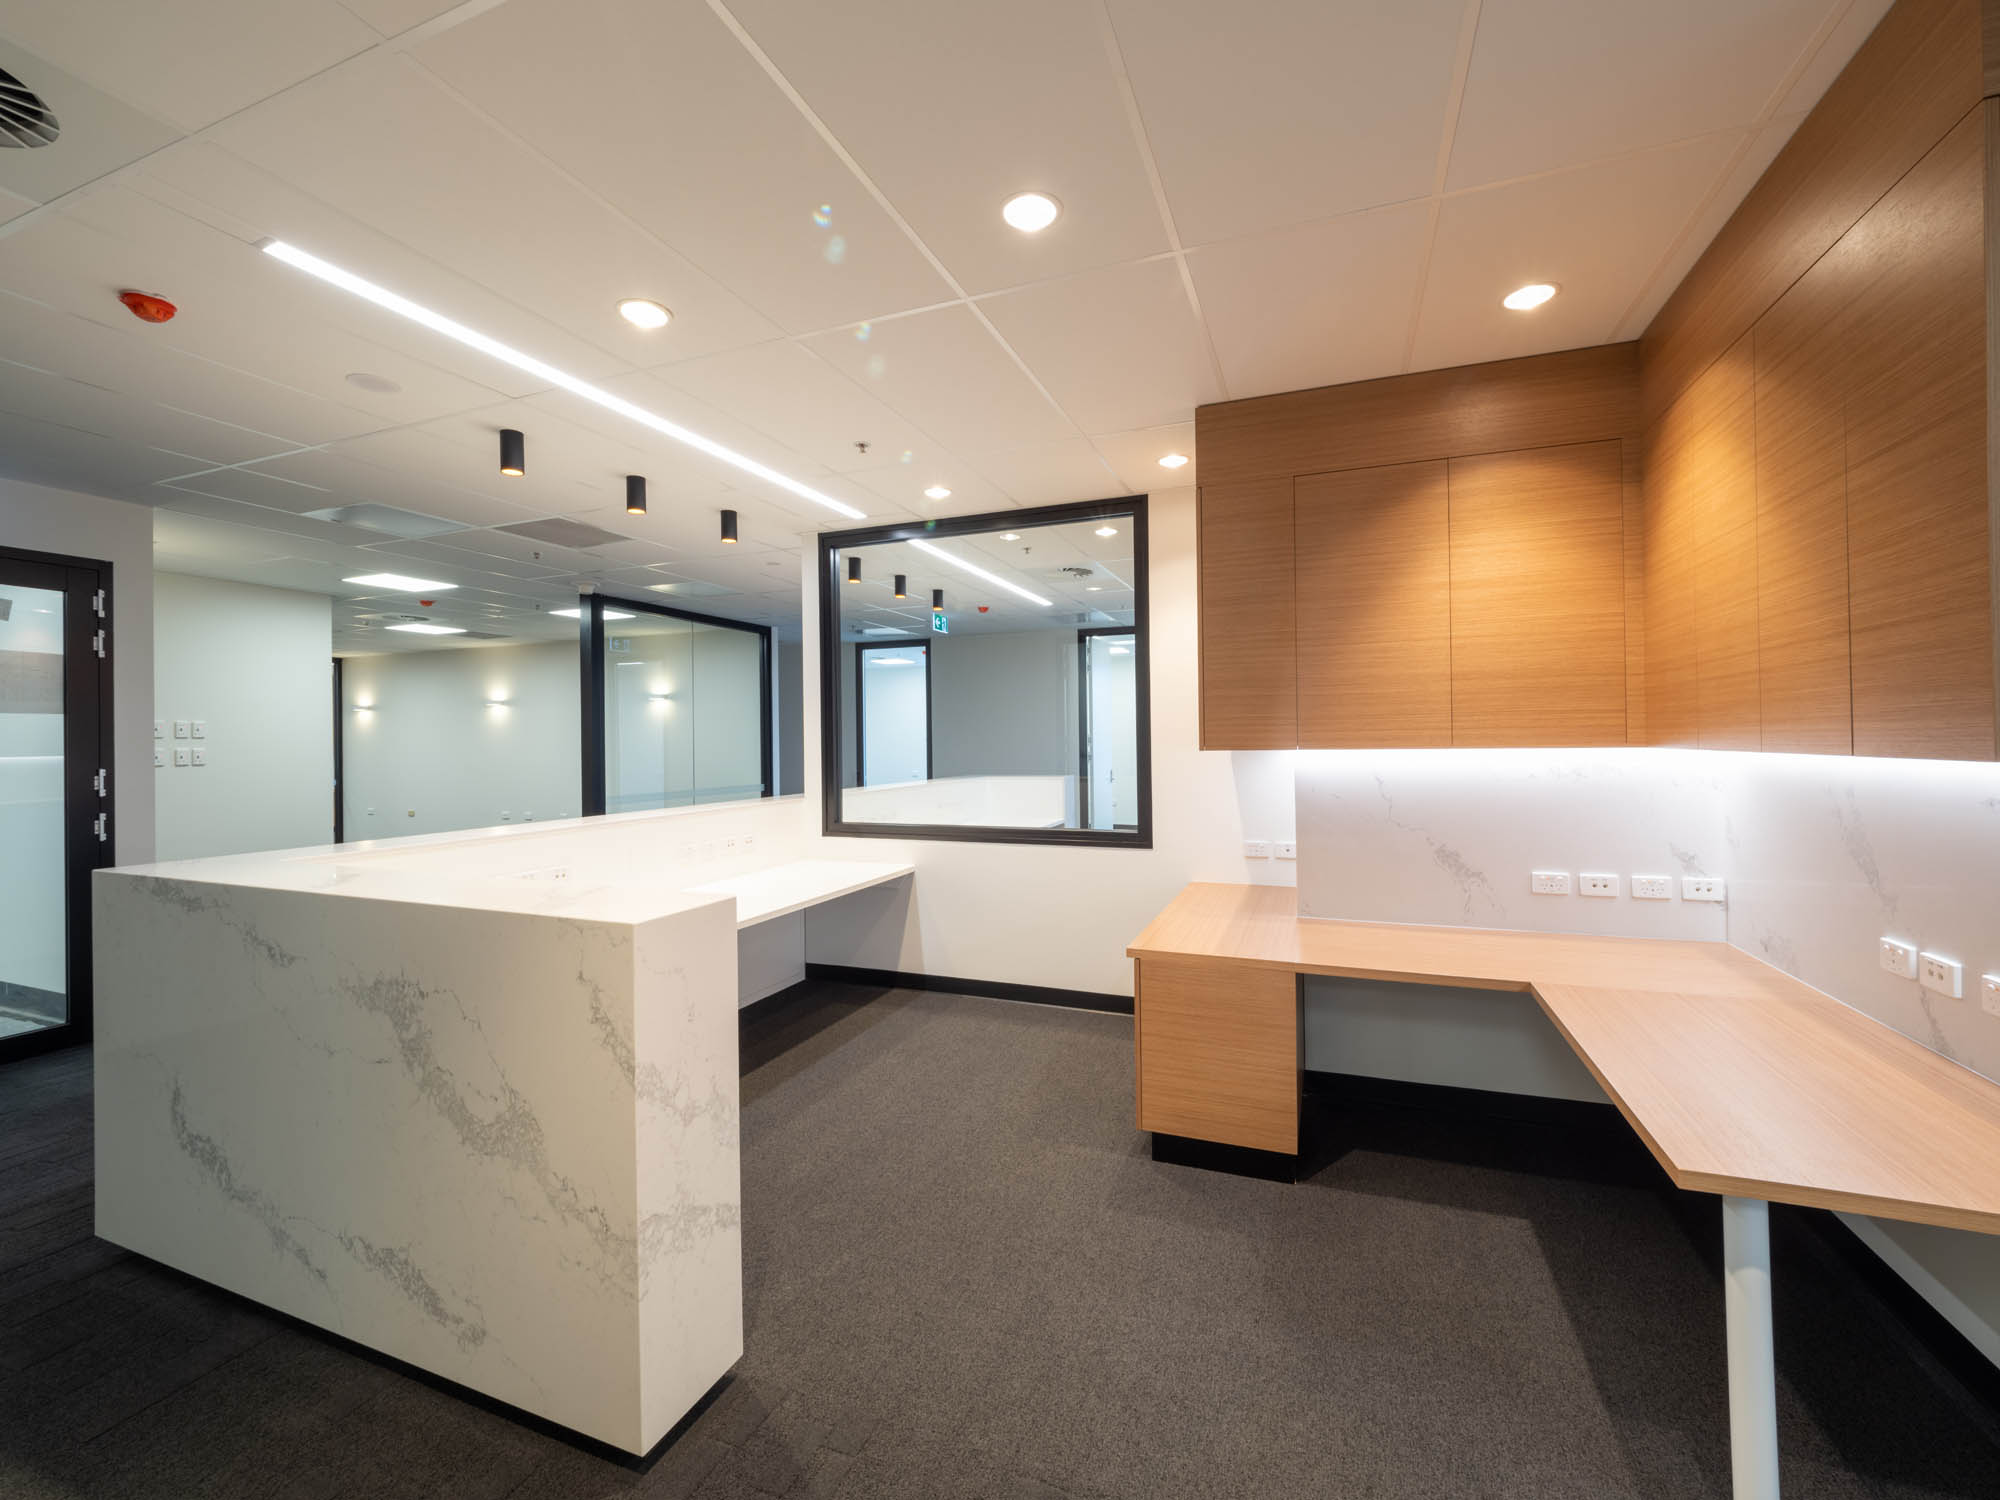 calvary adelaide hospital healthcare aged care fitout construction medical reception desk admission